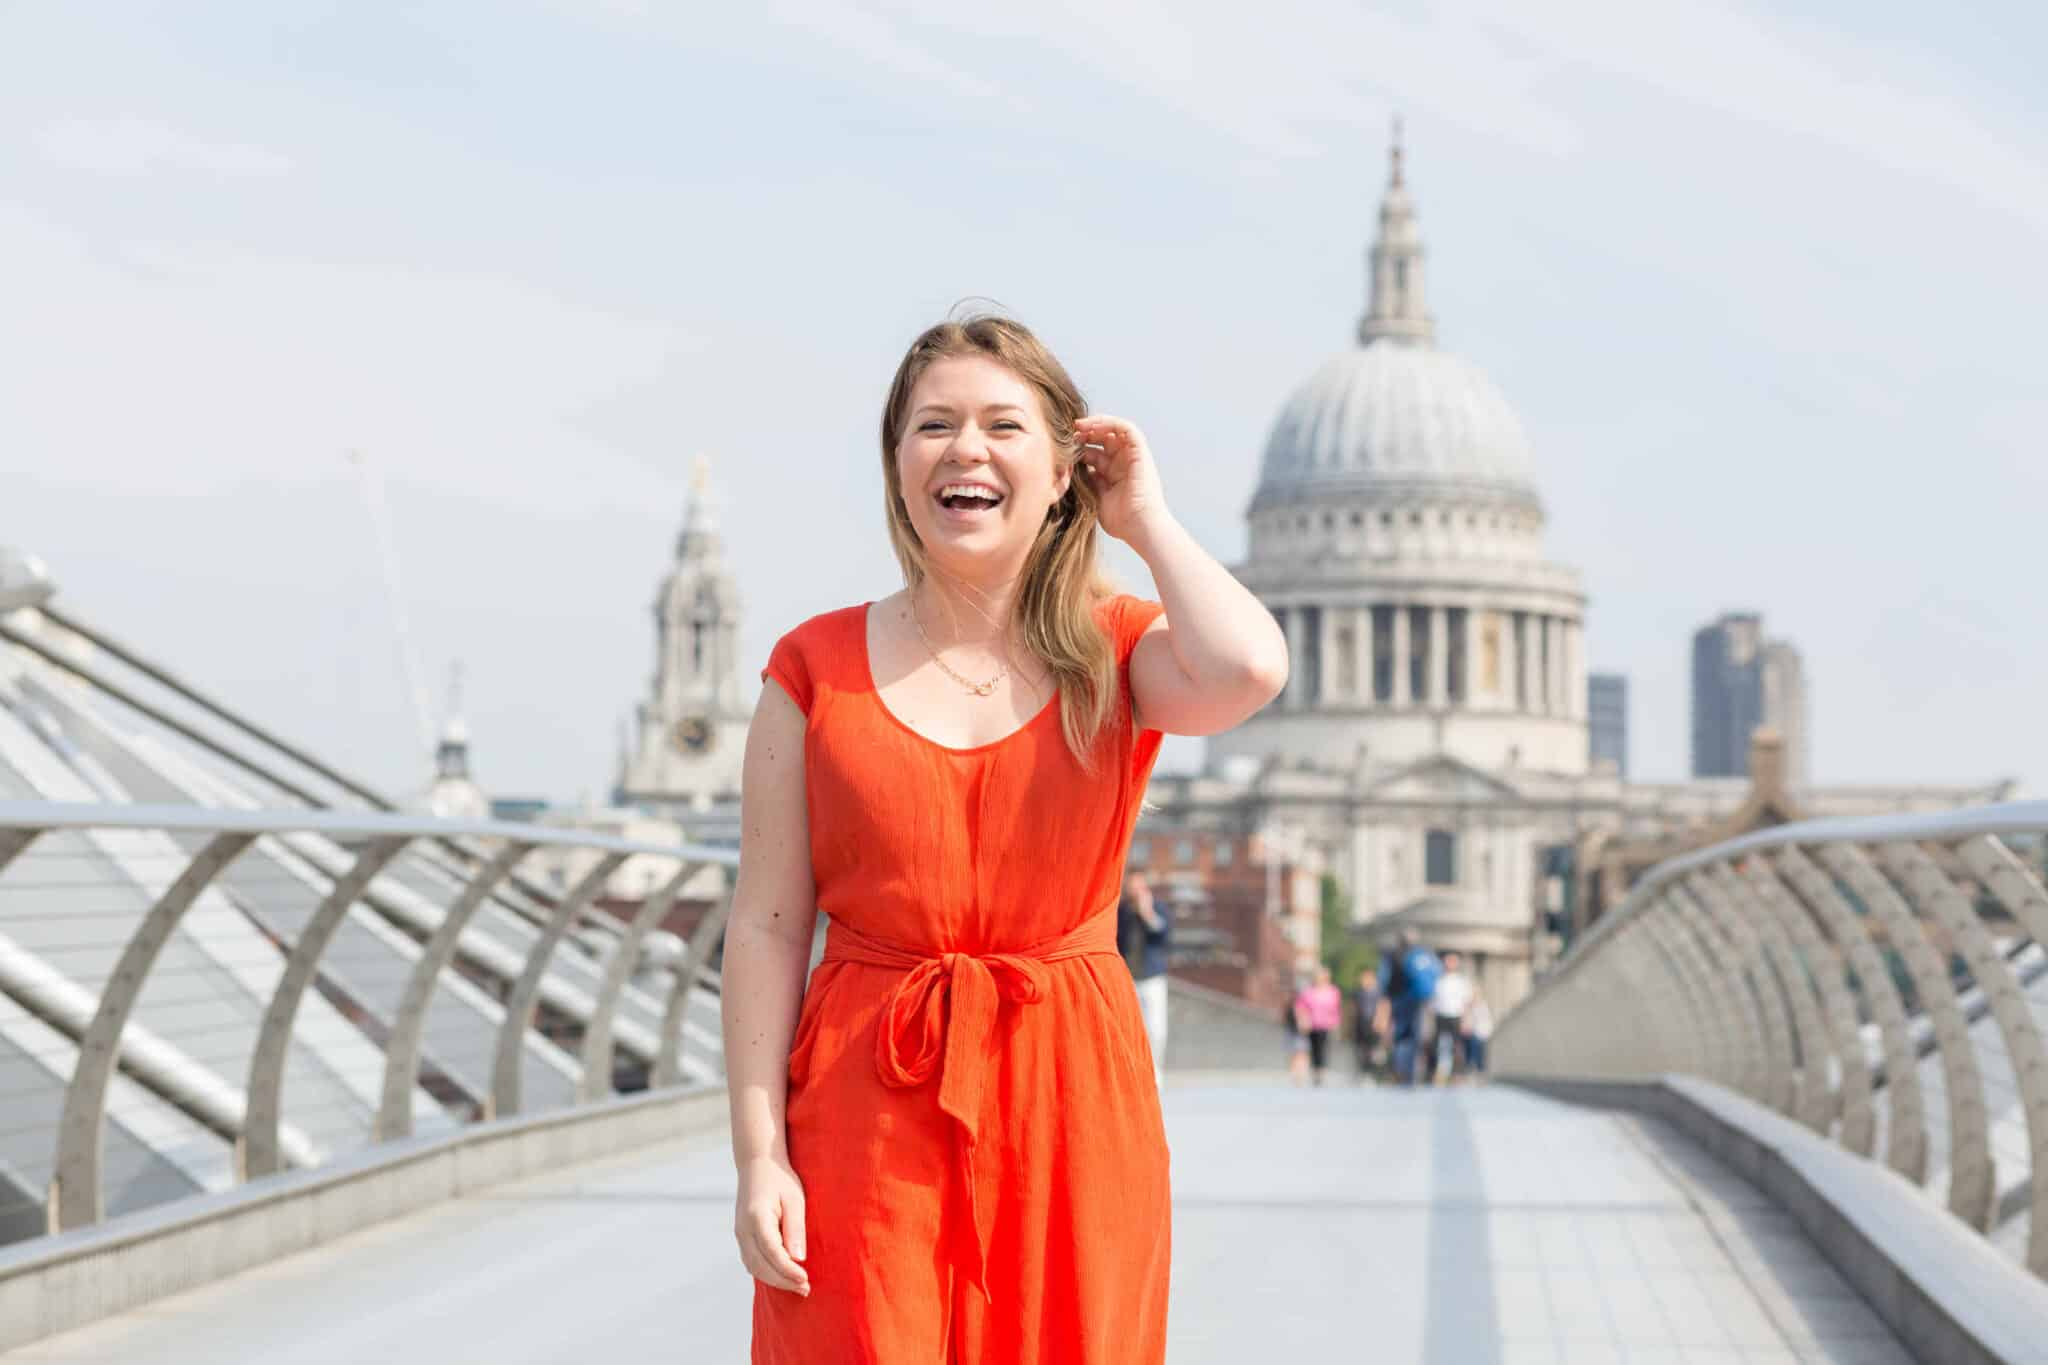 Charlie stands in front of St Pauls Cathedral and wears an orange jumpsuit. She is laughing.